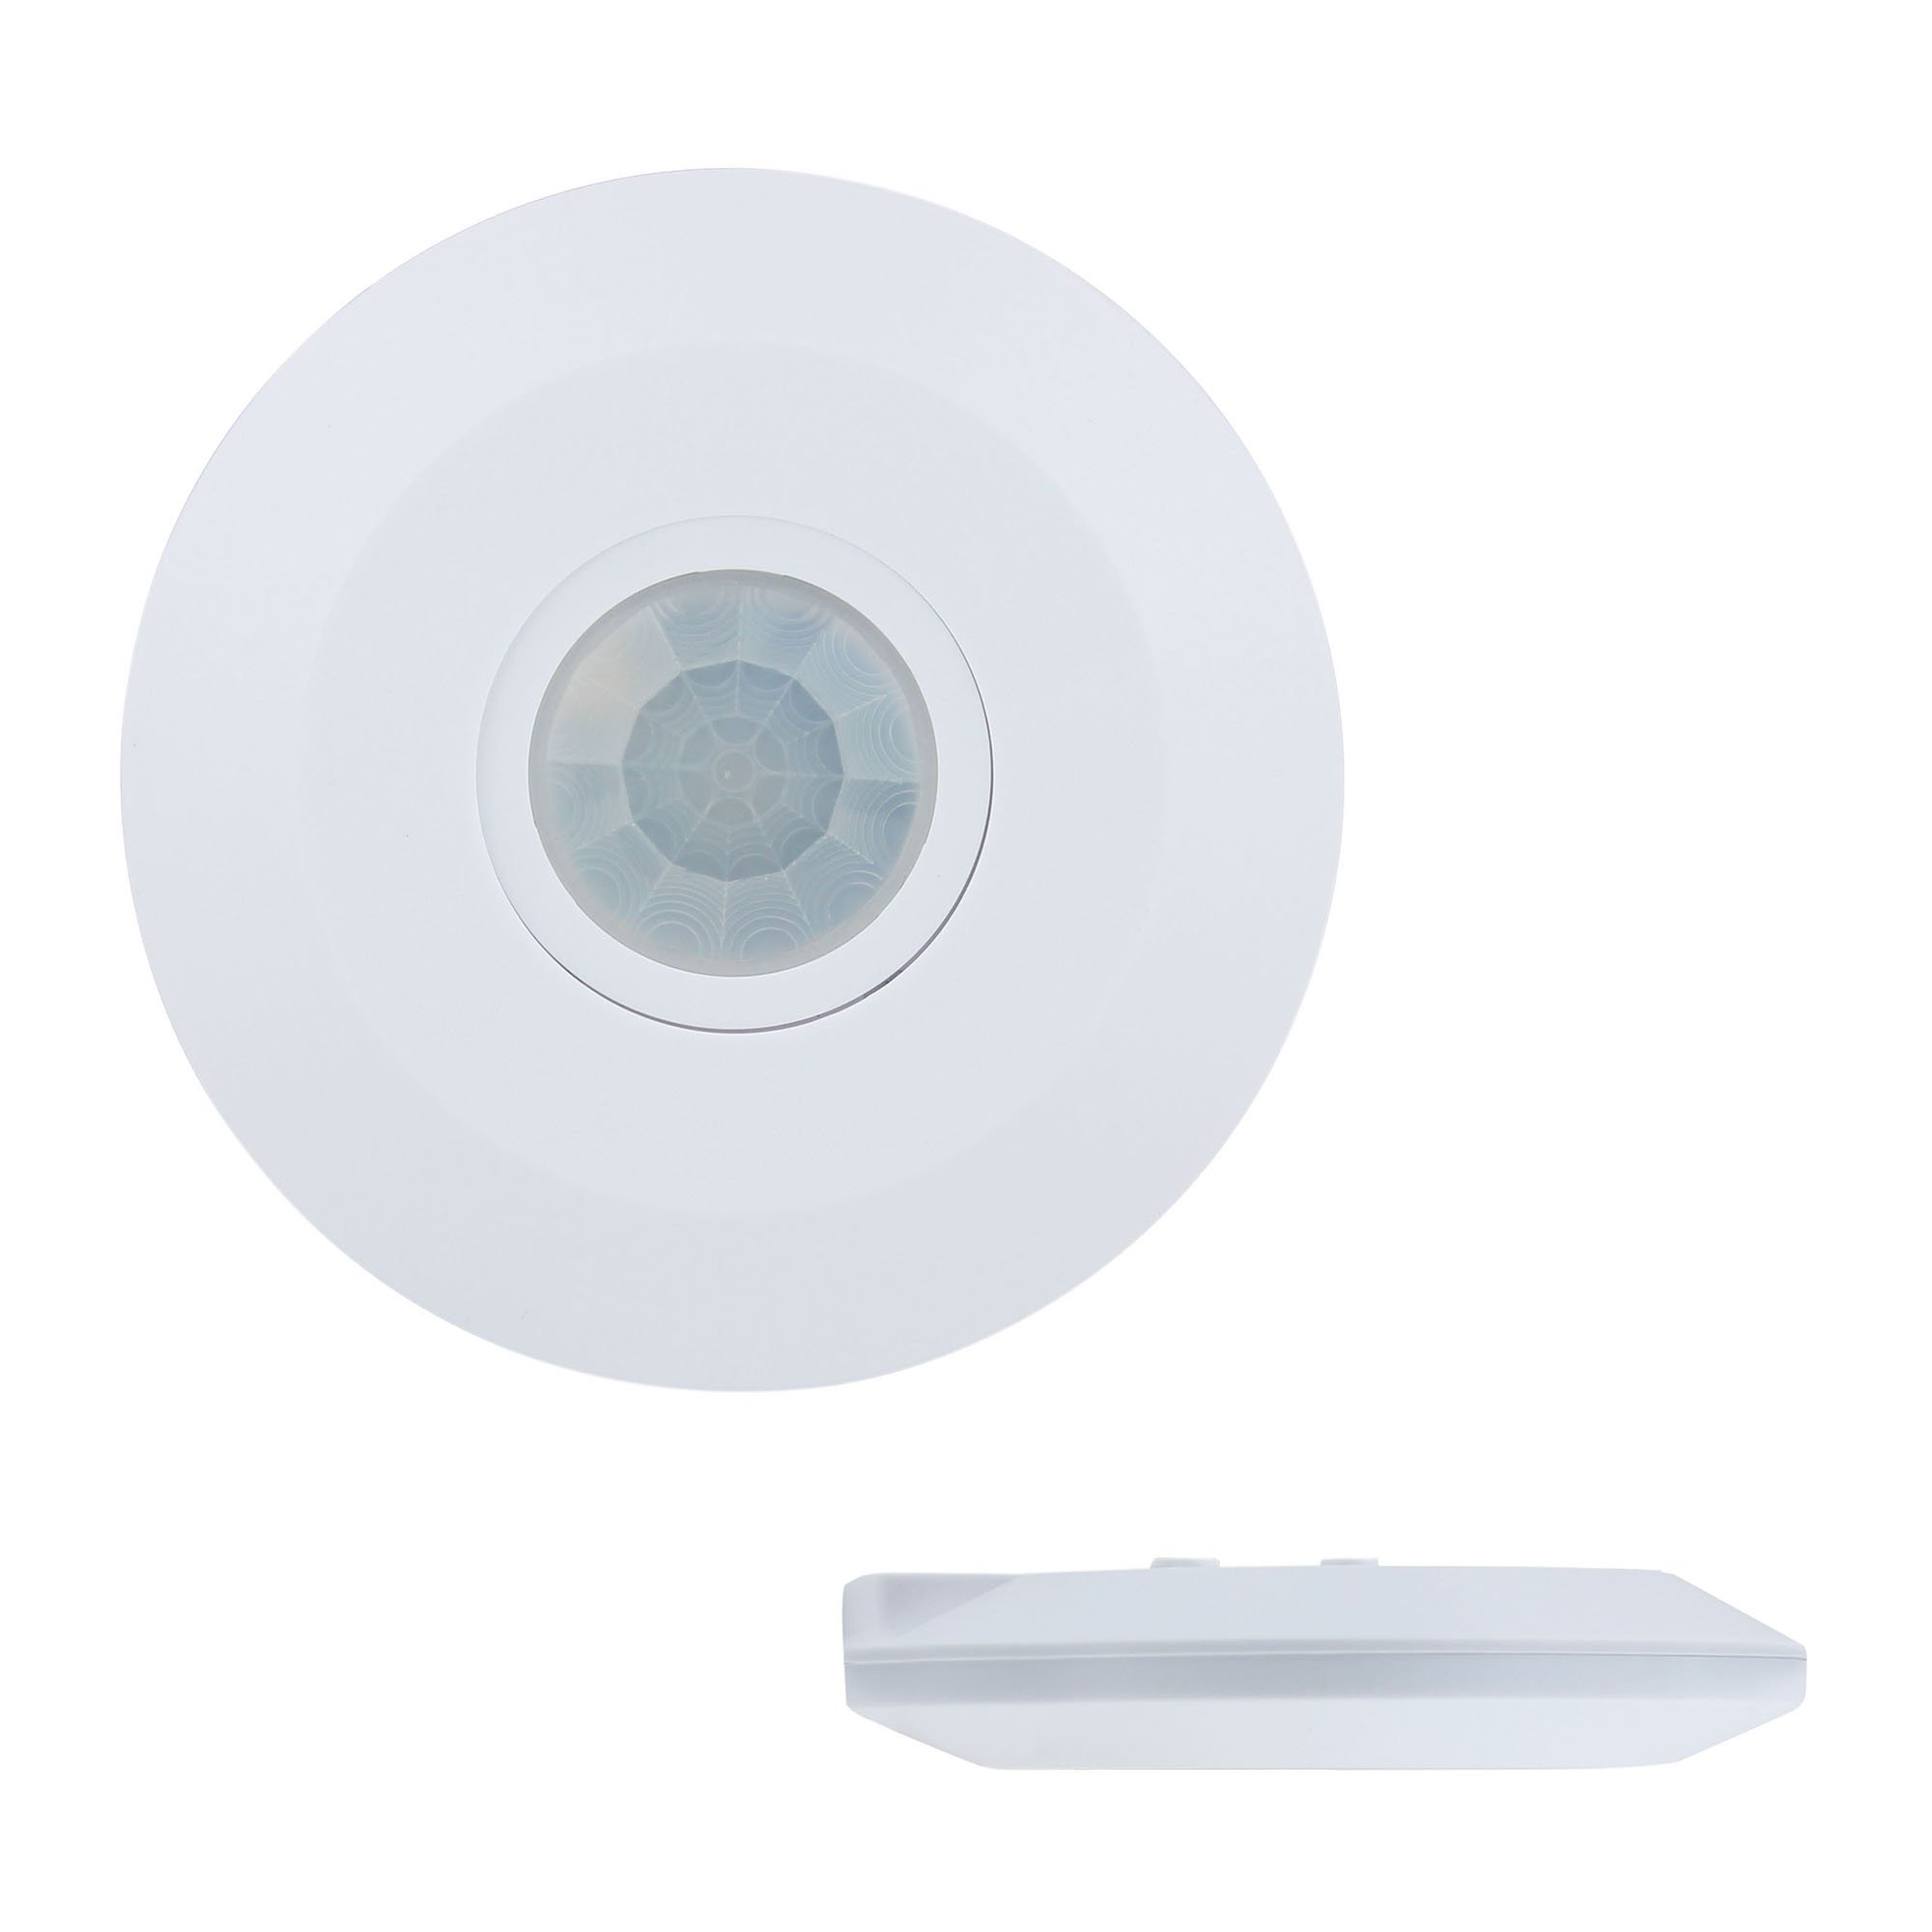 J.LUMI YCA1050 PIR Based Motion Detector, Ceiling Occupancy Sensor, 1'' Slim Profile, 360 Degree Detection, PIR Motion Sensor (85-265V AC, 2000W)